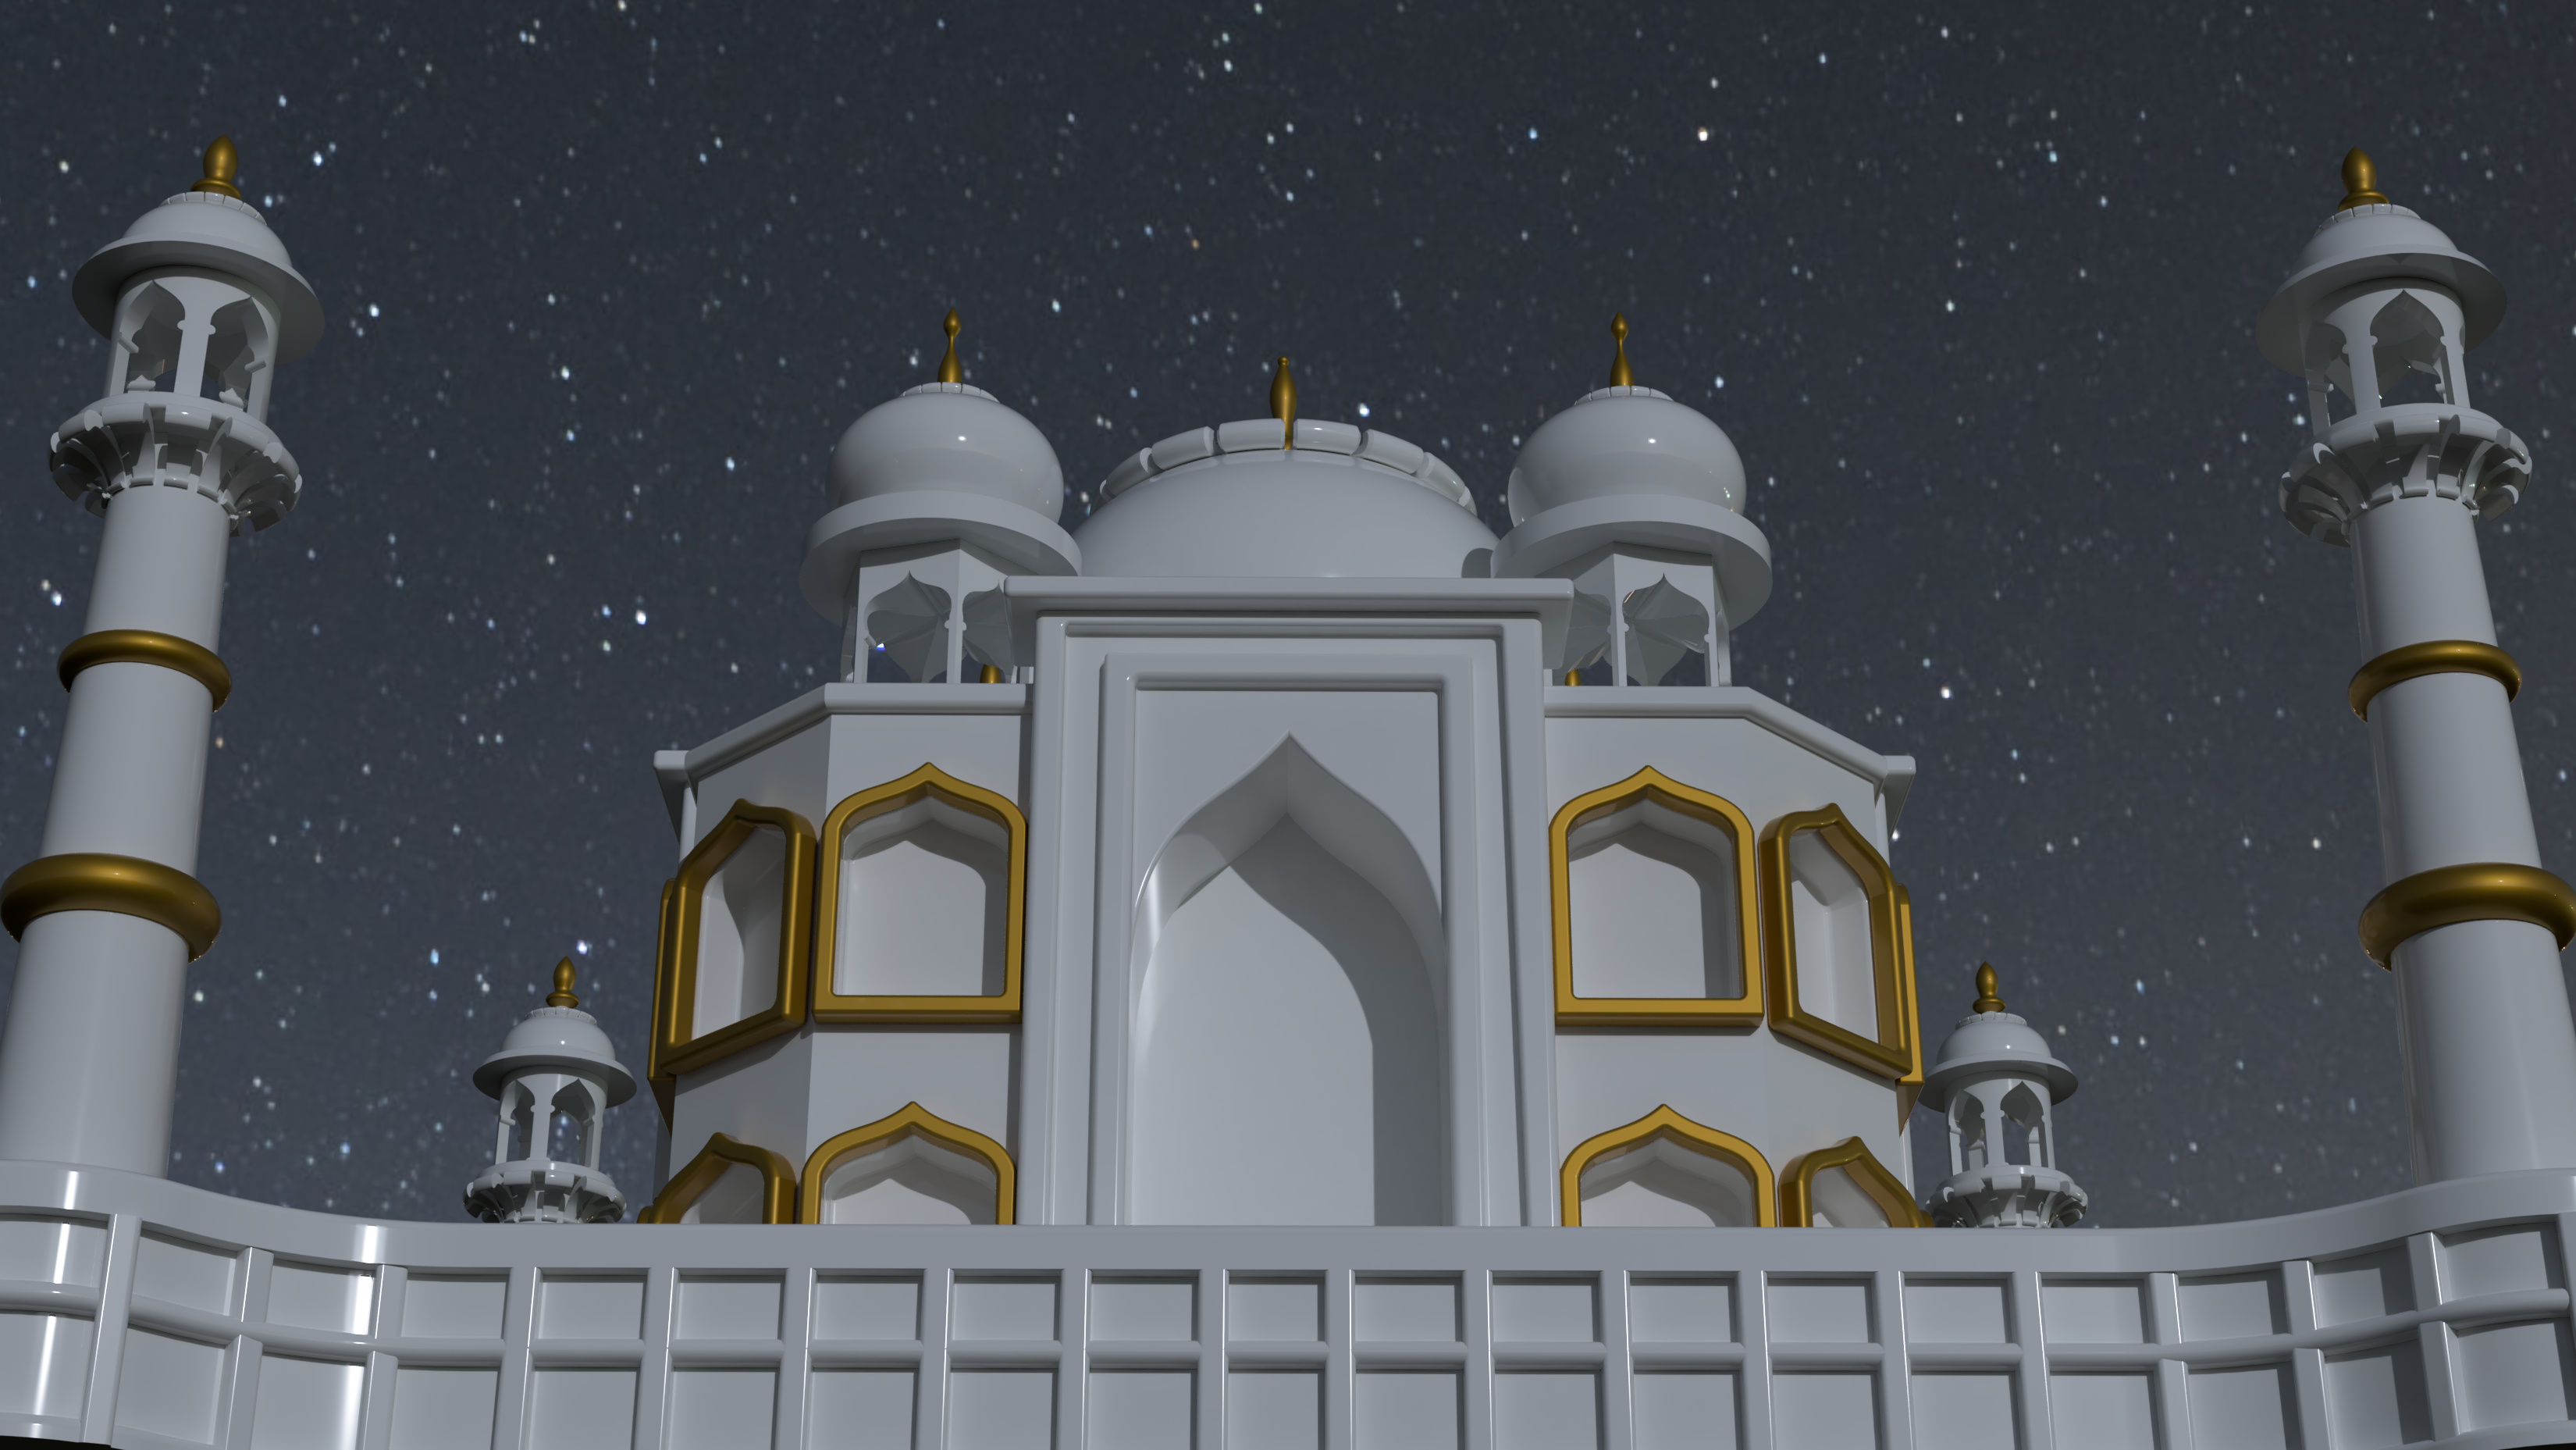 Tajmahal-fusion360-2020-may-14-02-18-29pm-3500-3500